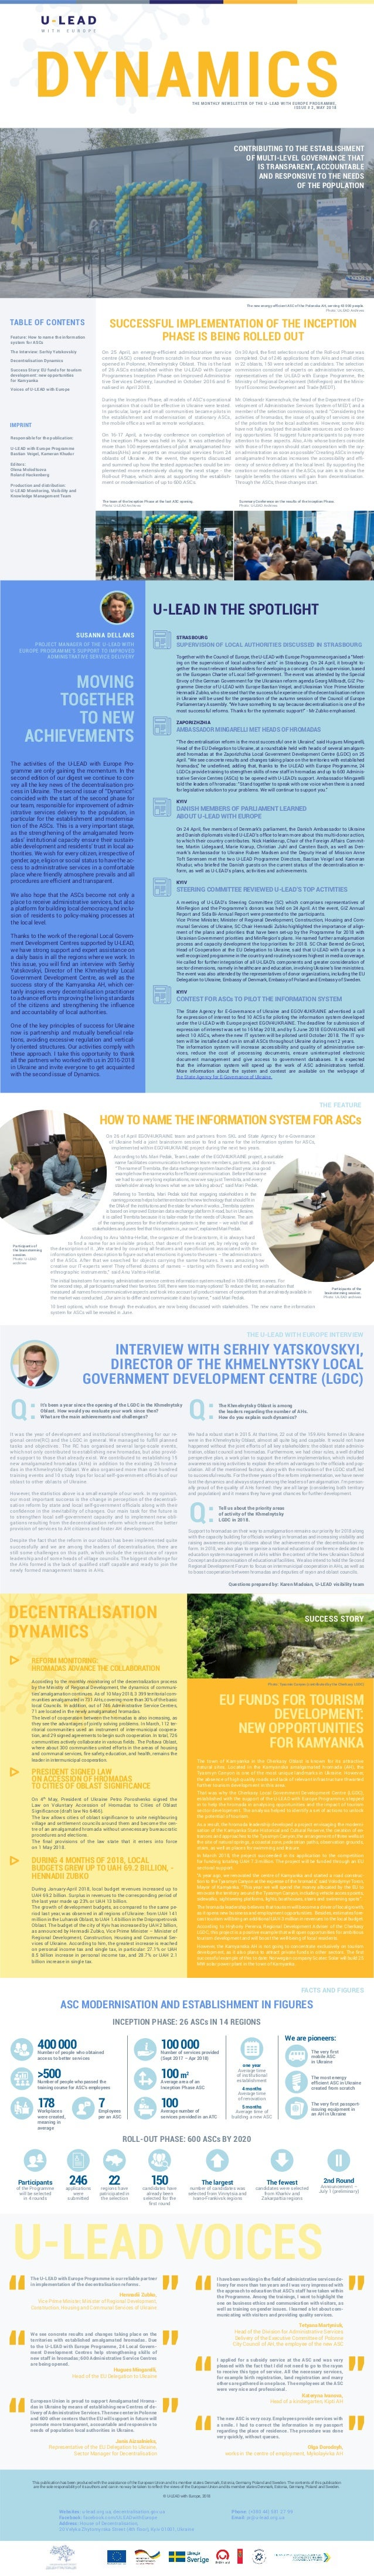 DYNAMICS SUCCESSFUL IMPLEMENTATION OF THE INCEPTION PHASE IS BEING ROLLED OUT THE MONTHLY NEWSLETTER OF THE U-LEAD WITH EU...